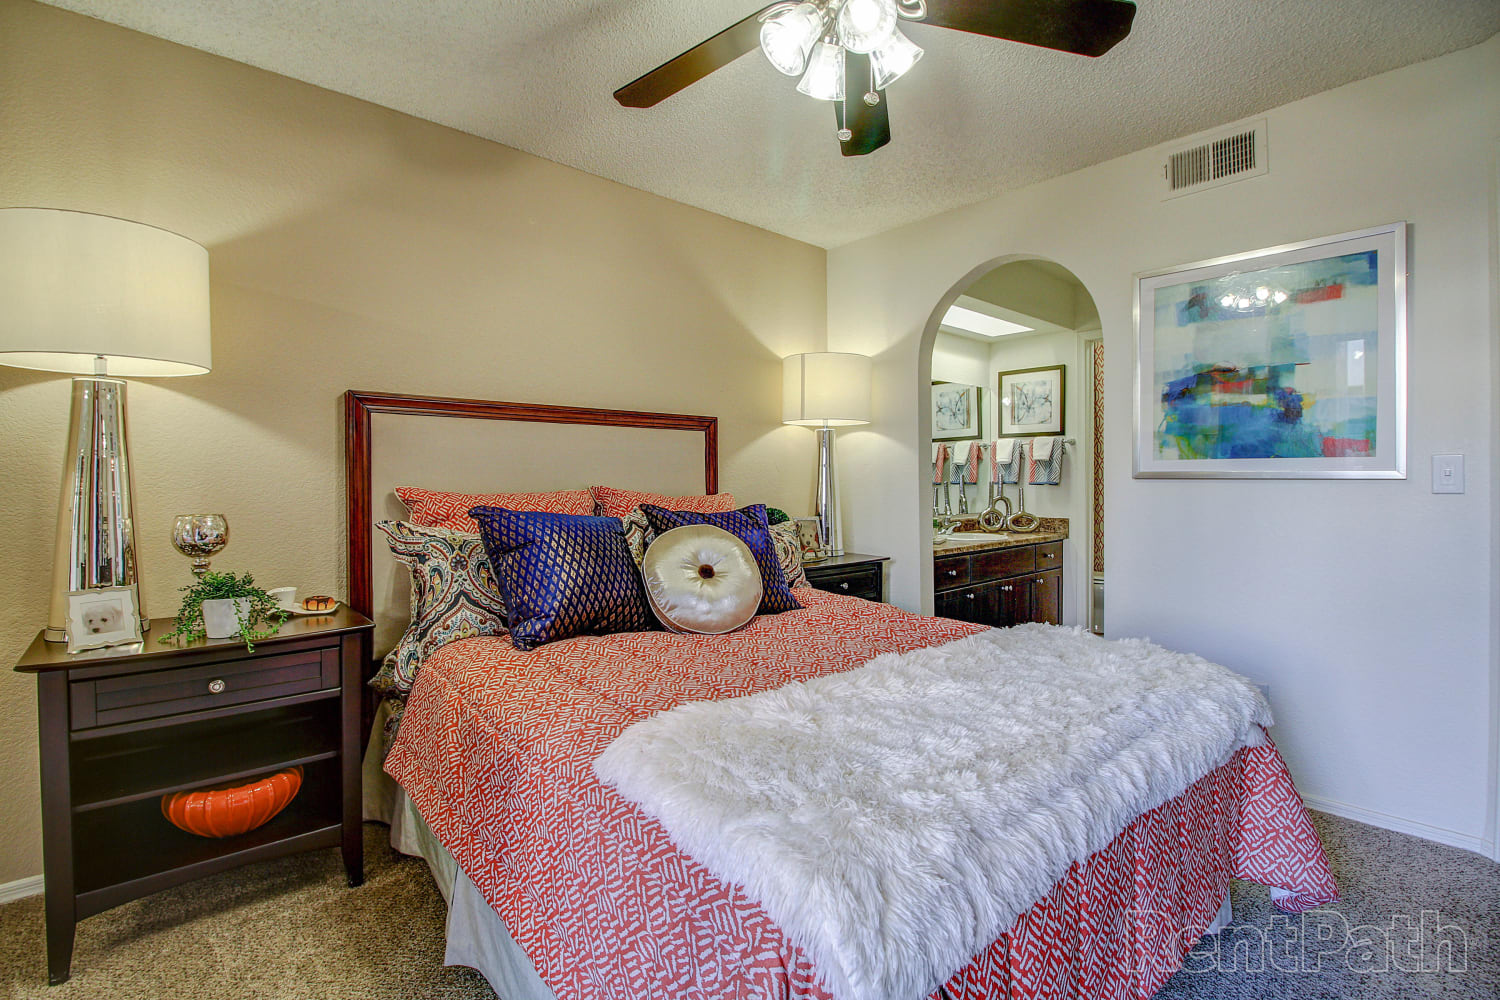 Bedroom with a ceiling fan at Casa Santa Fe Apartments in Scottsdale, Arizona